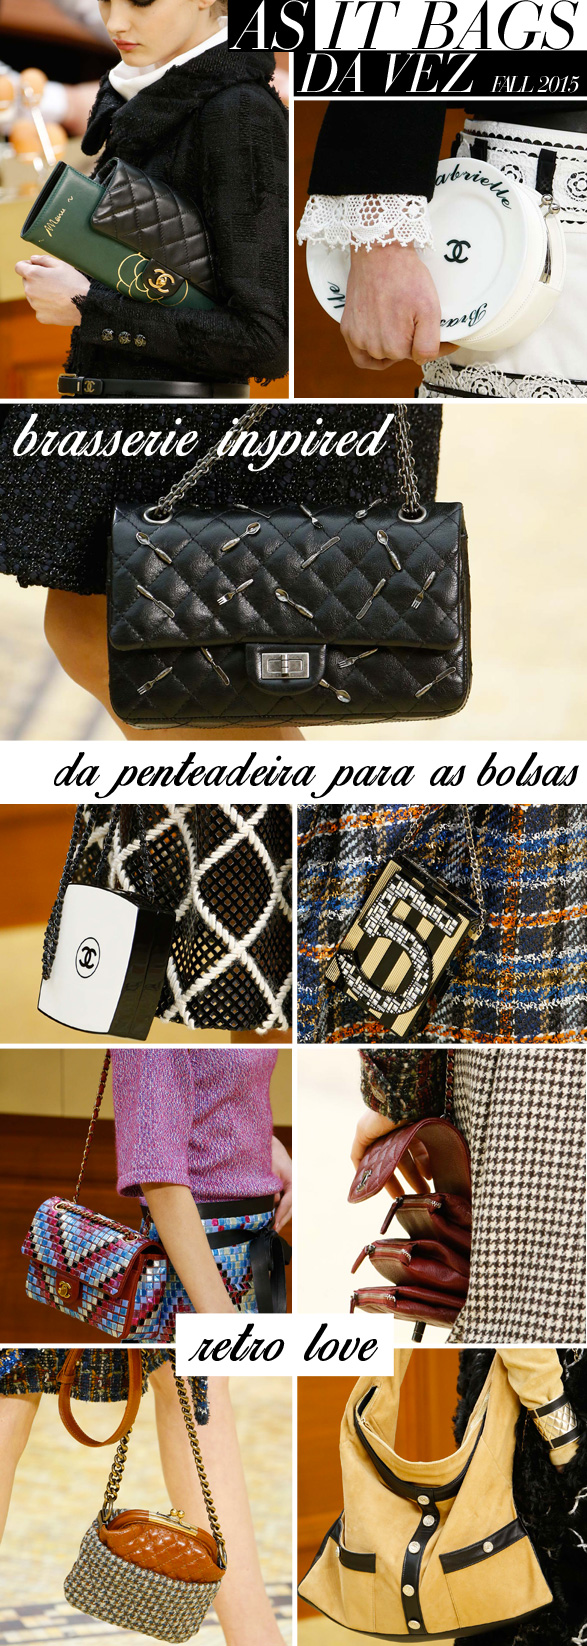 bolsas-chanel-fall-2015